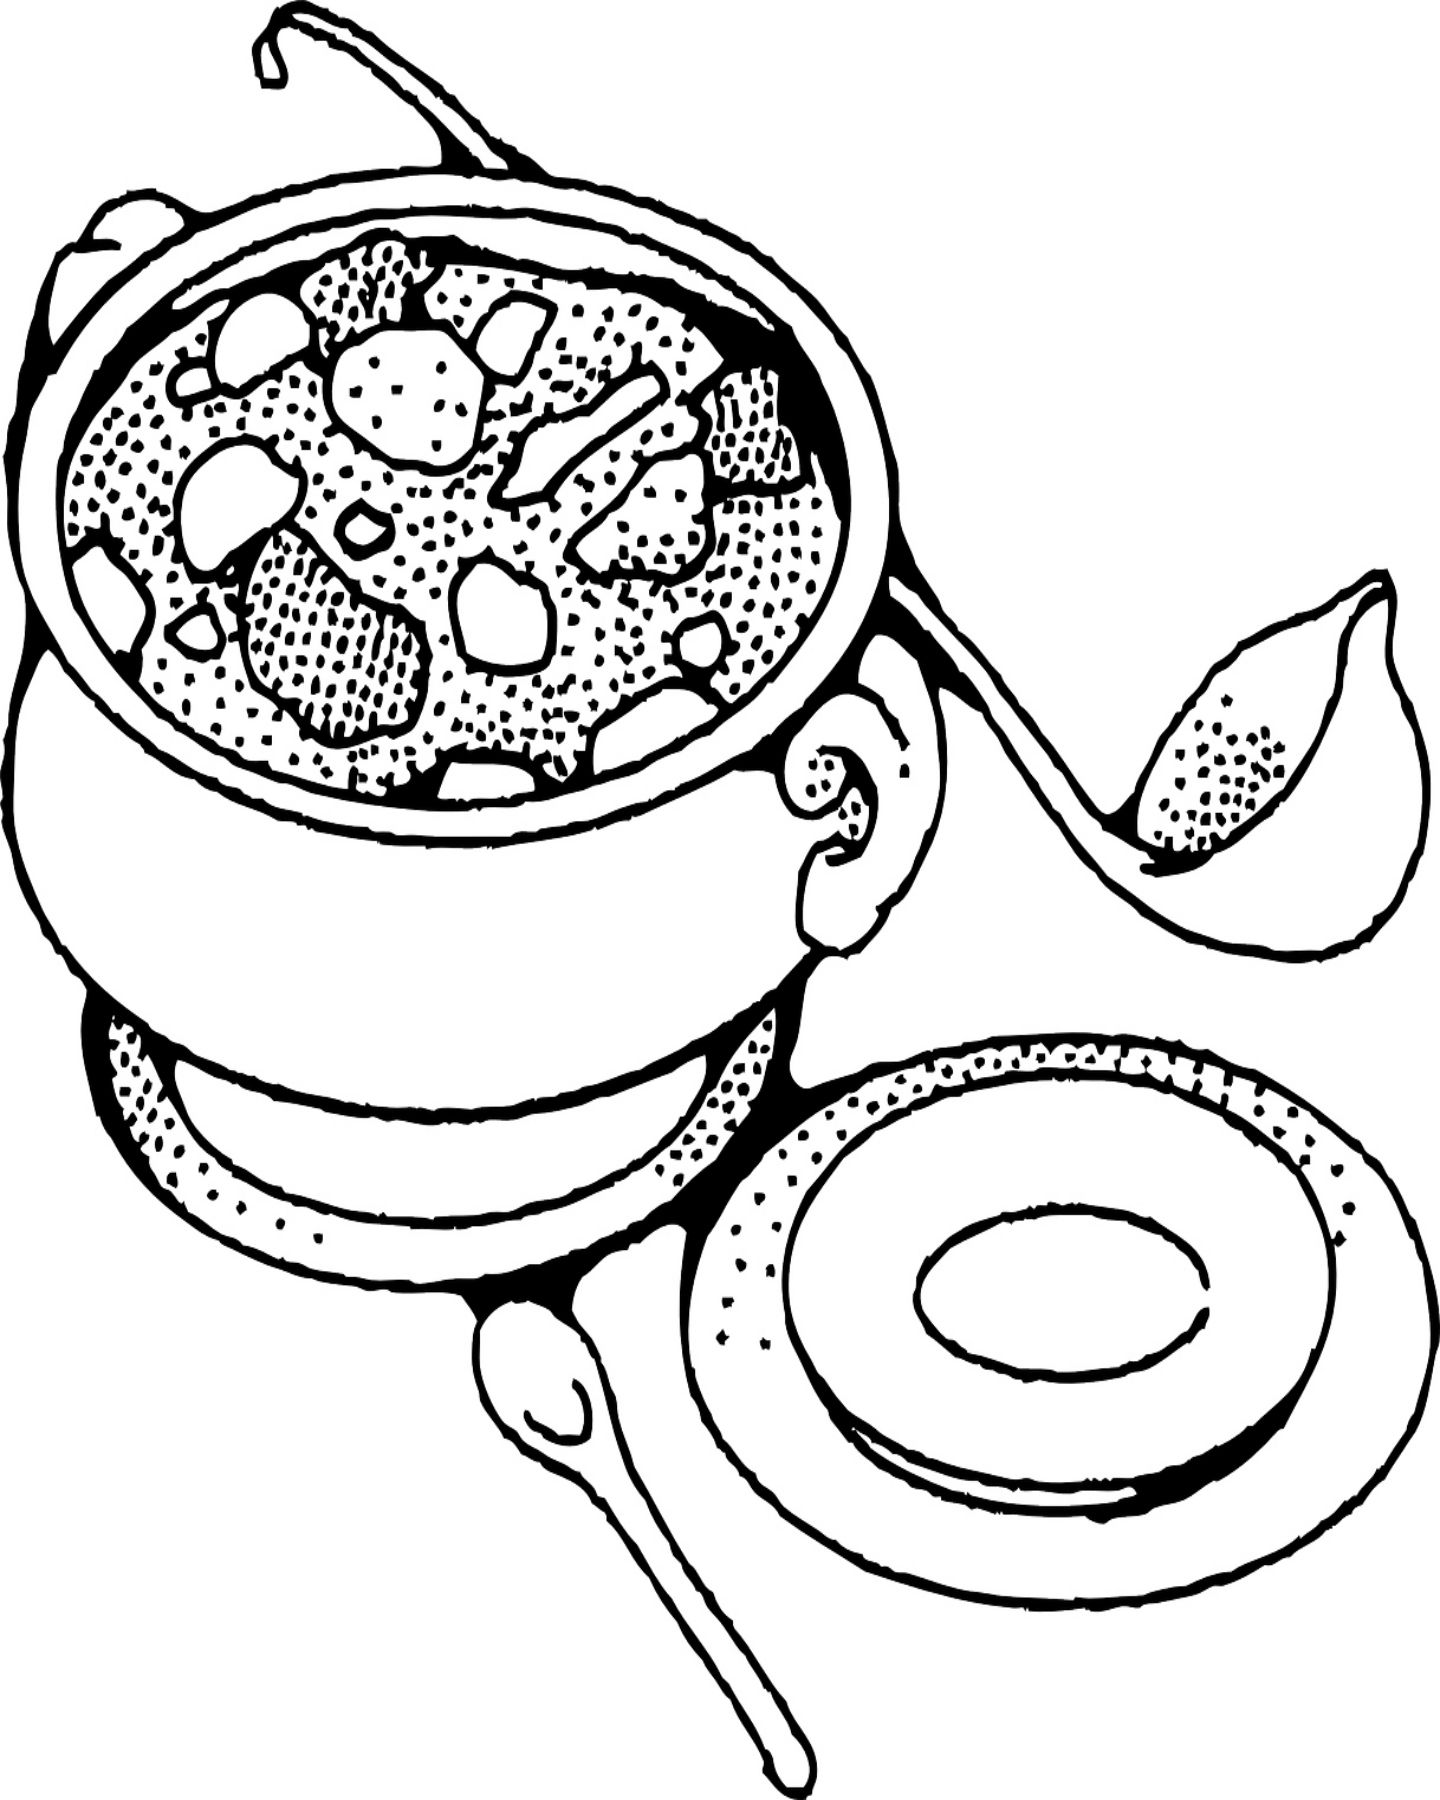 Free Printable Soup Coloring Page With Images